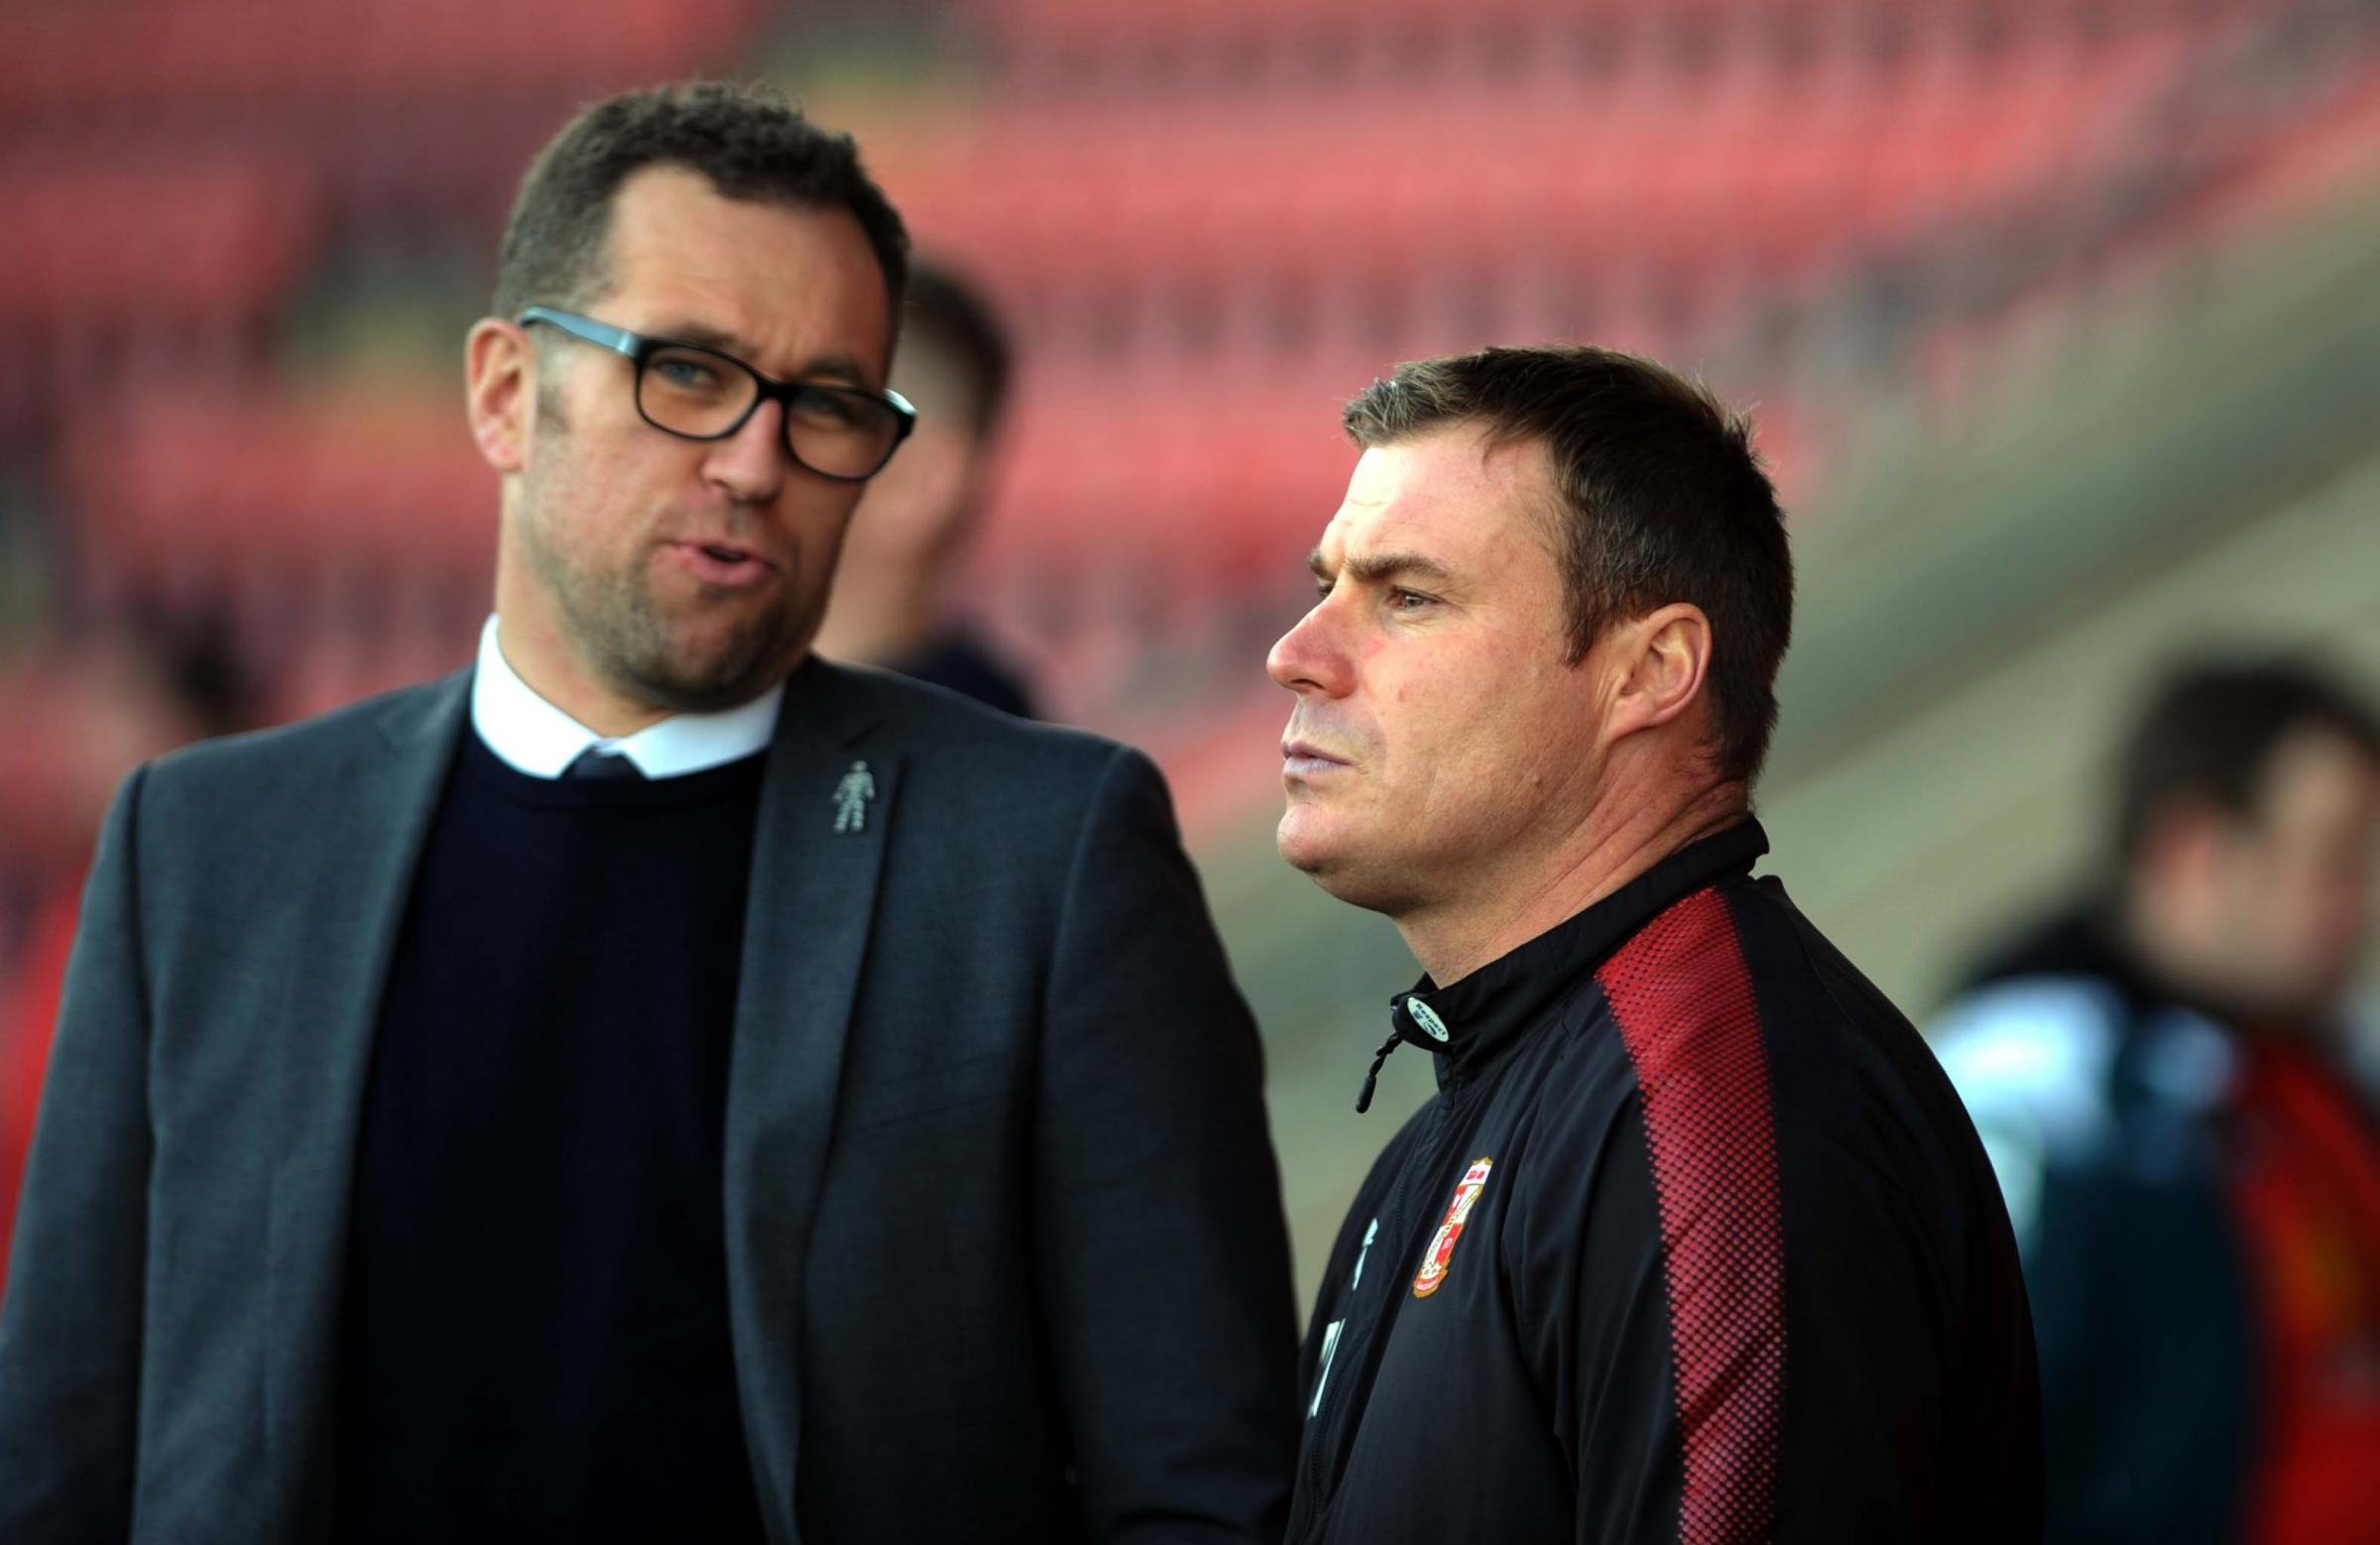 David Flitcroft, pictured at Crewe on Saturday (Picture: DAVE EVANS)